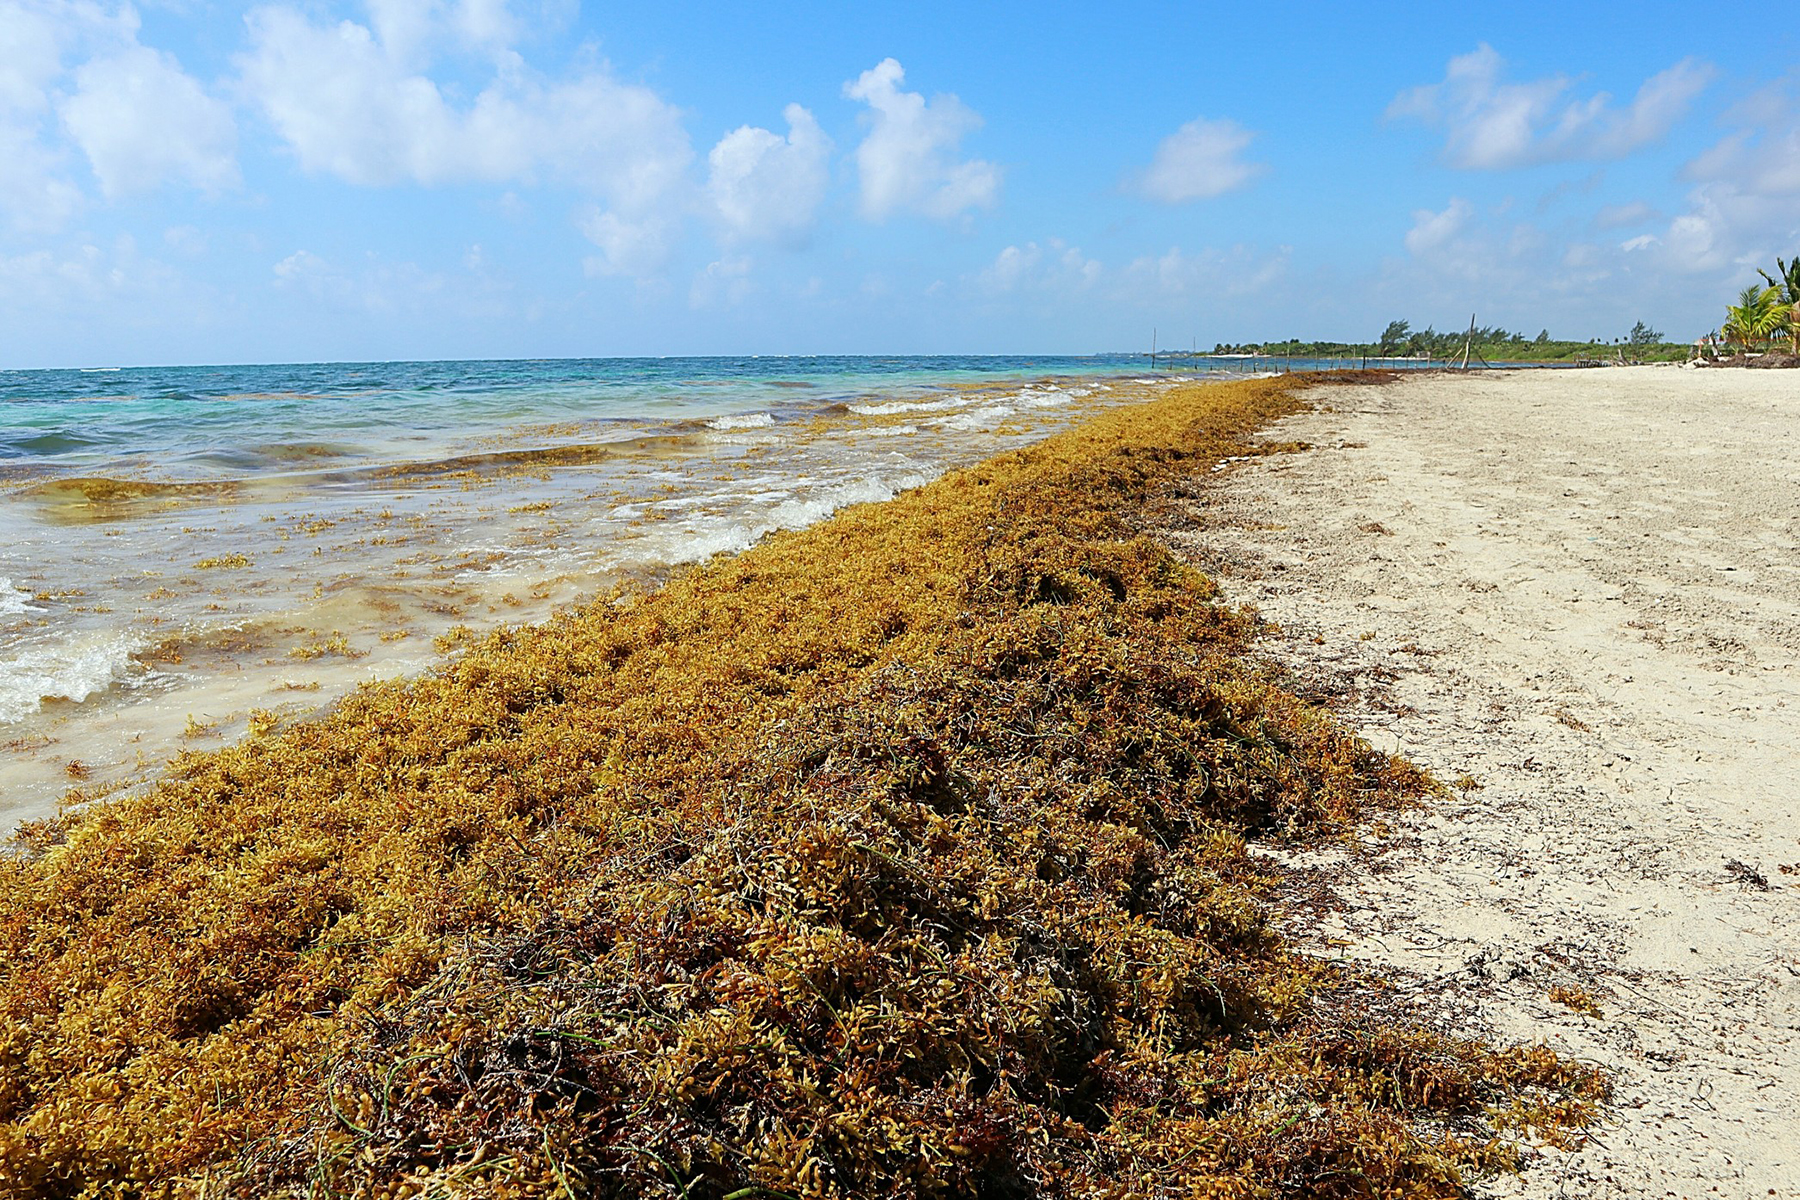 Beaches Overrun by Smelly Sargassum Seaweed Could Be New